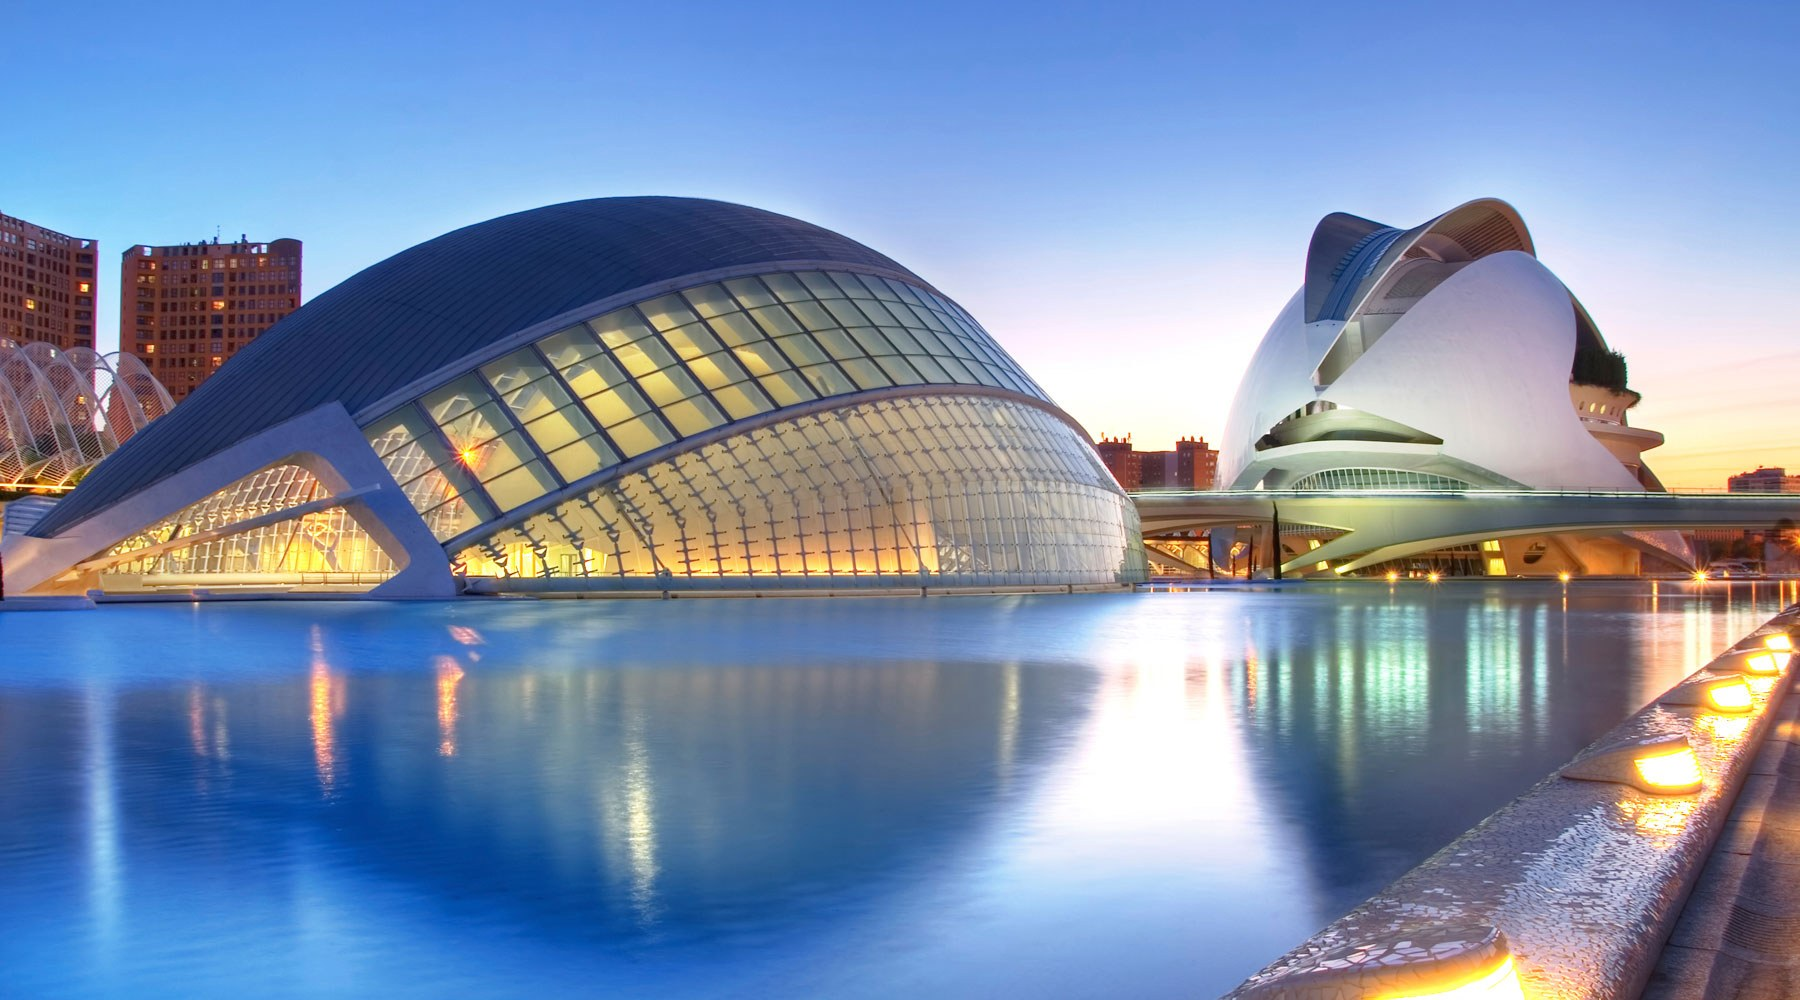 Valencia will host the IWA Specialist Groups Leaders Forum